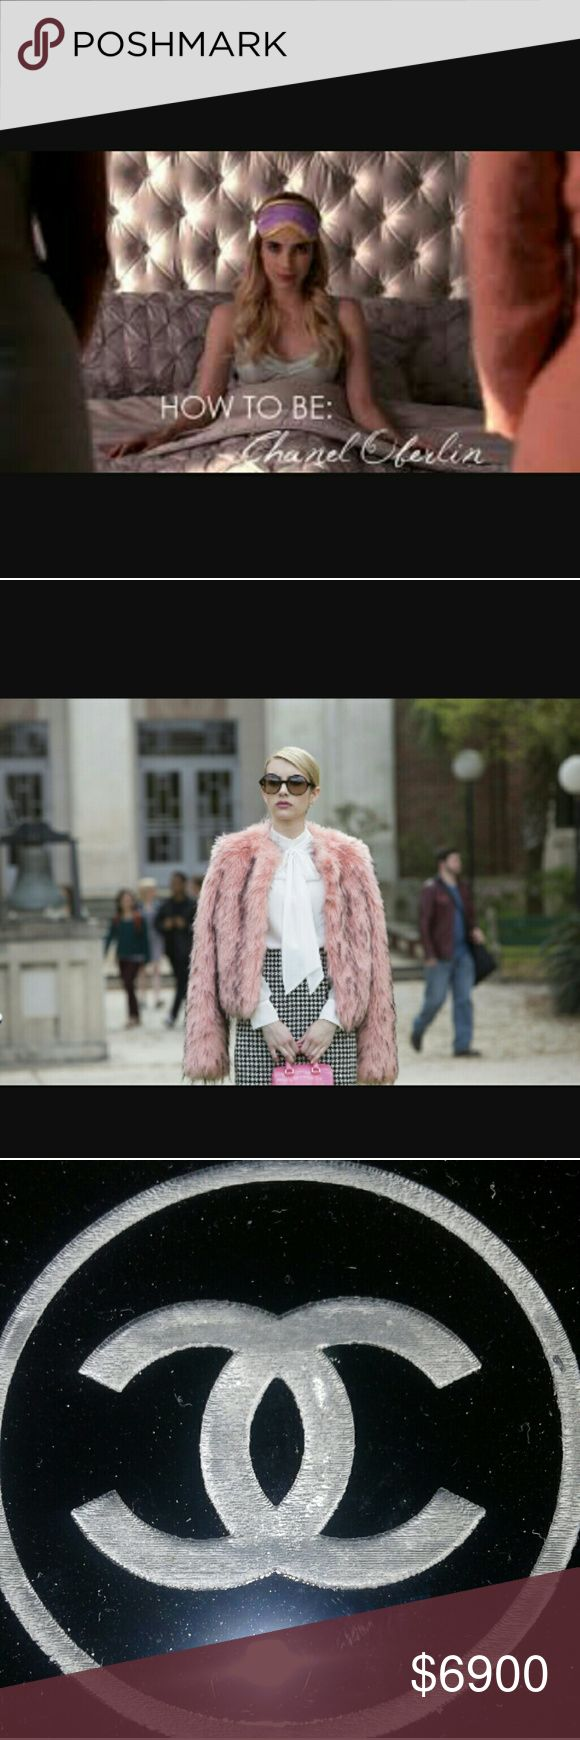 CHANEL OBERLIN 🏛Scream Queens😅 CHANEL OBERLIN Chanel Oberlin is the main protagonist of Scream Queens. She is the former president of Kappa...House🏛 CHANEL  Accessories